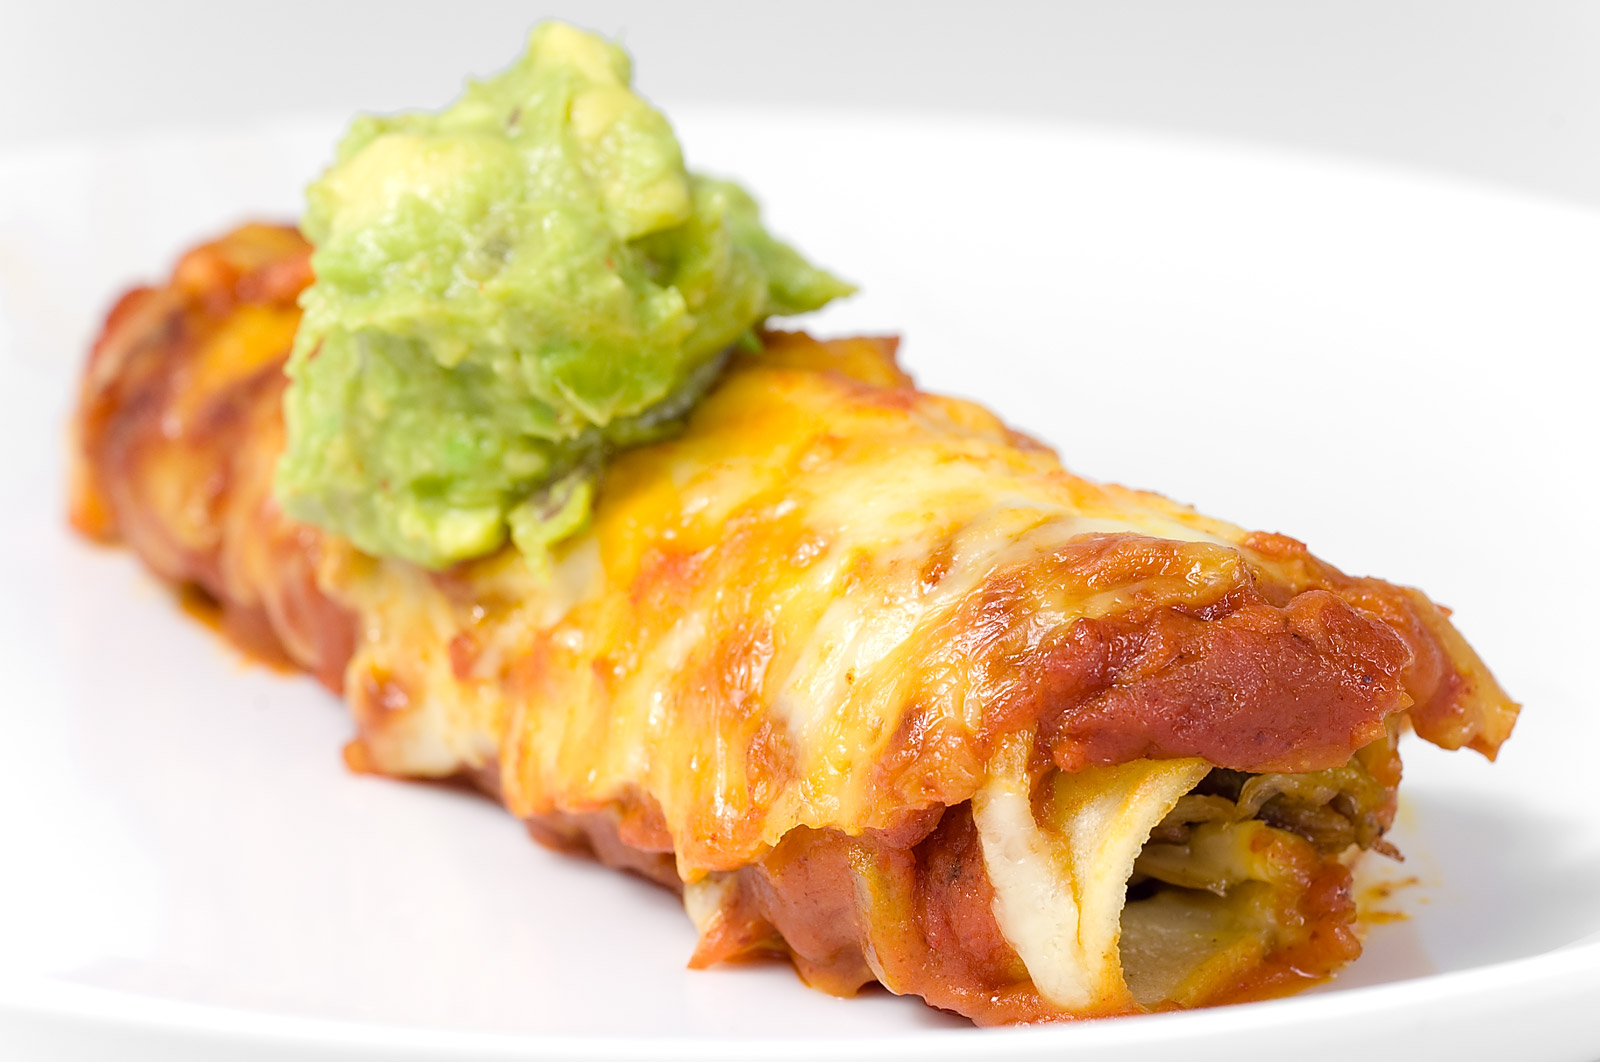 National Enchilada Day | Foodimentary - National Food Holidays